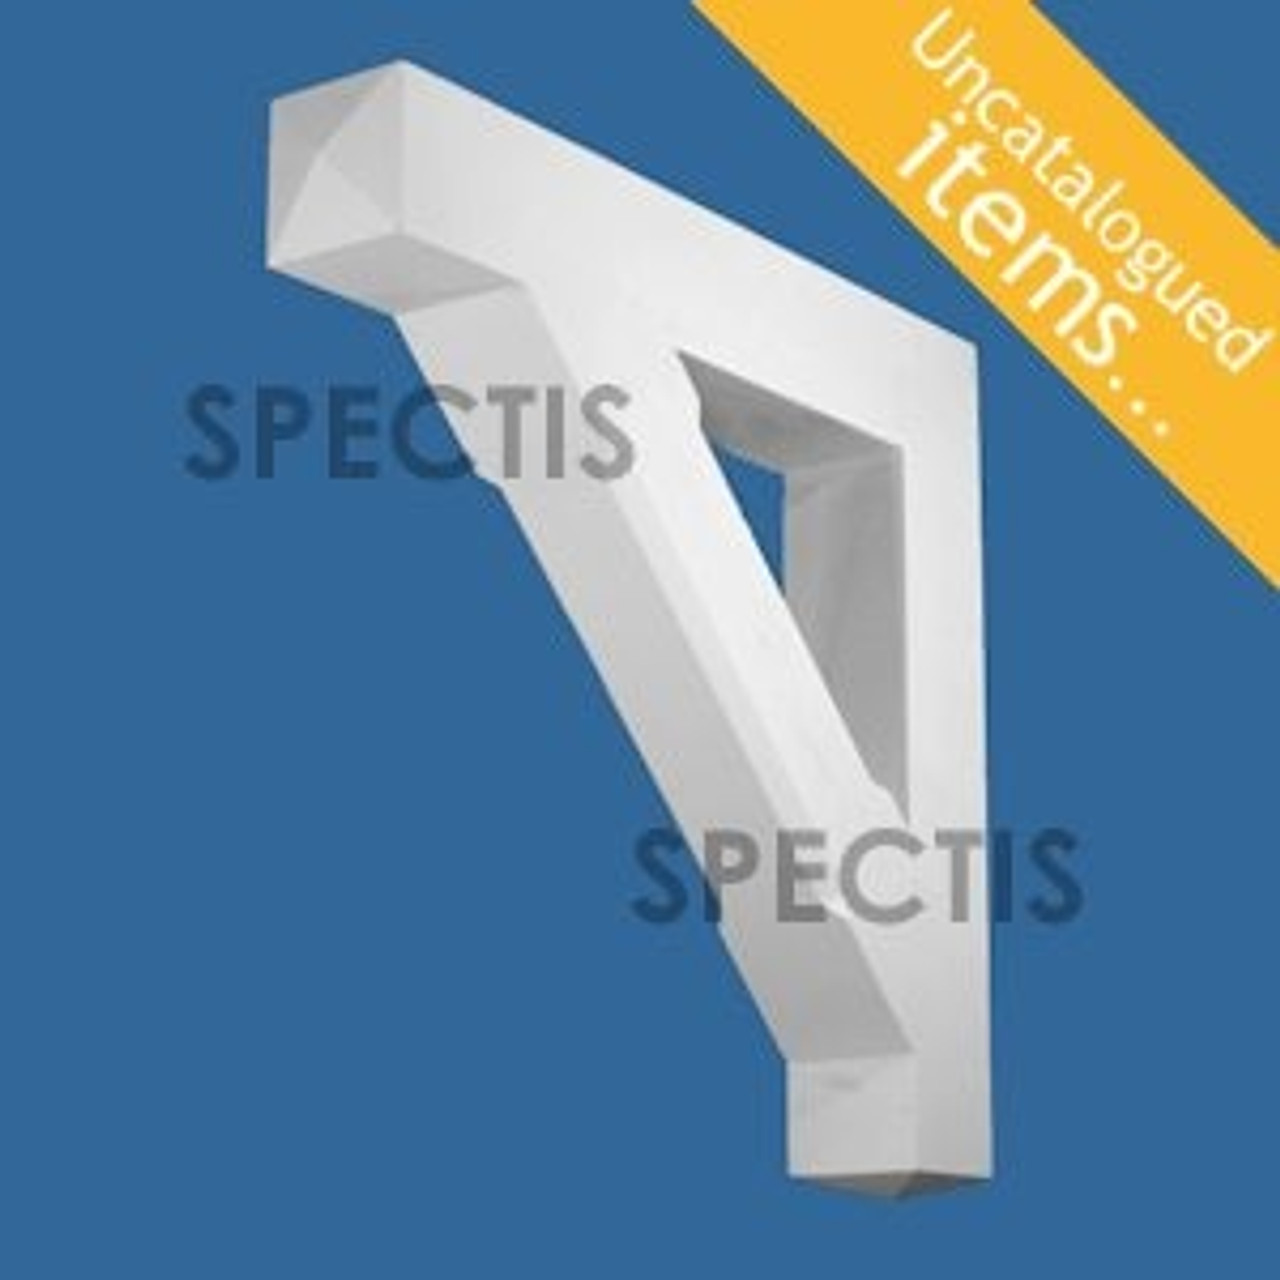 """BL3034 Spectis Eave Block or Bracket 5.5""""W x 34.75""""H x 32.75"""" Projection"""